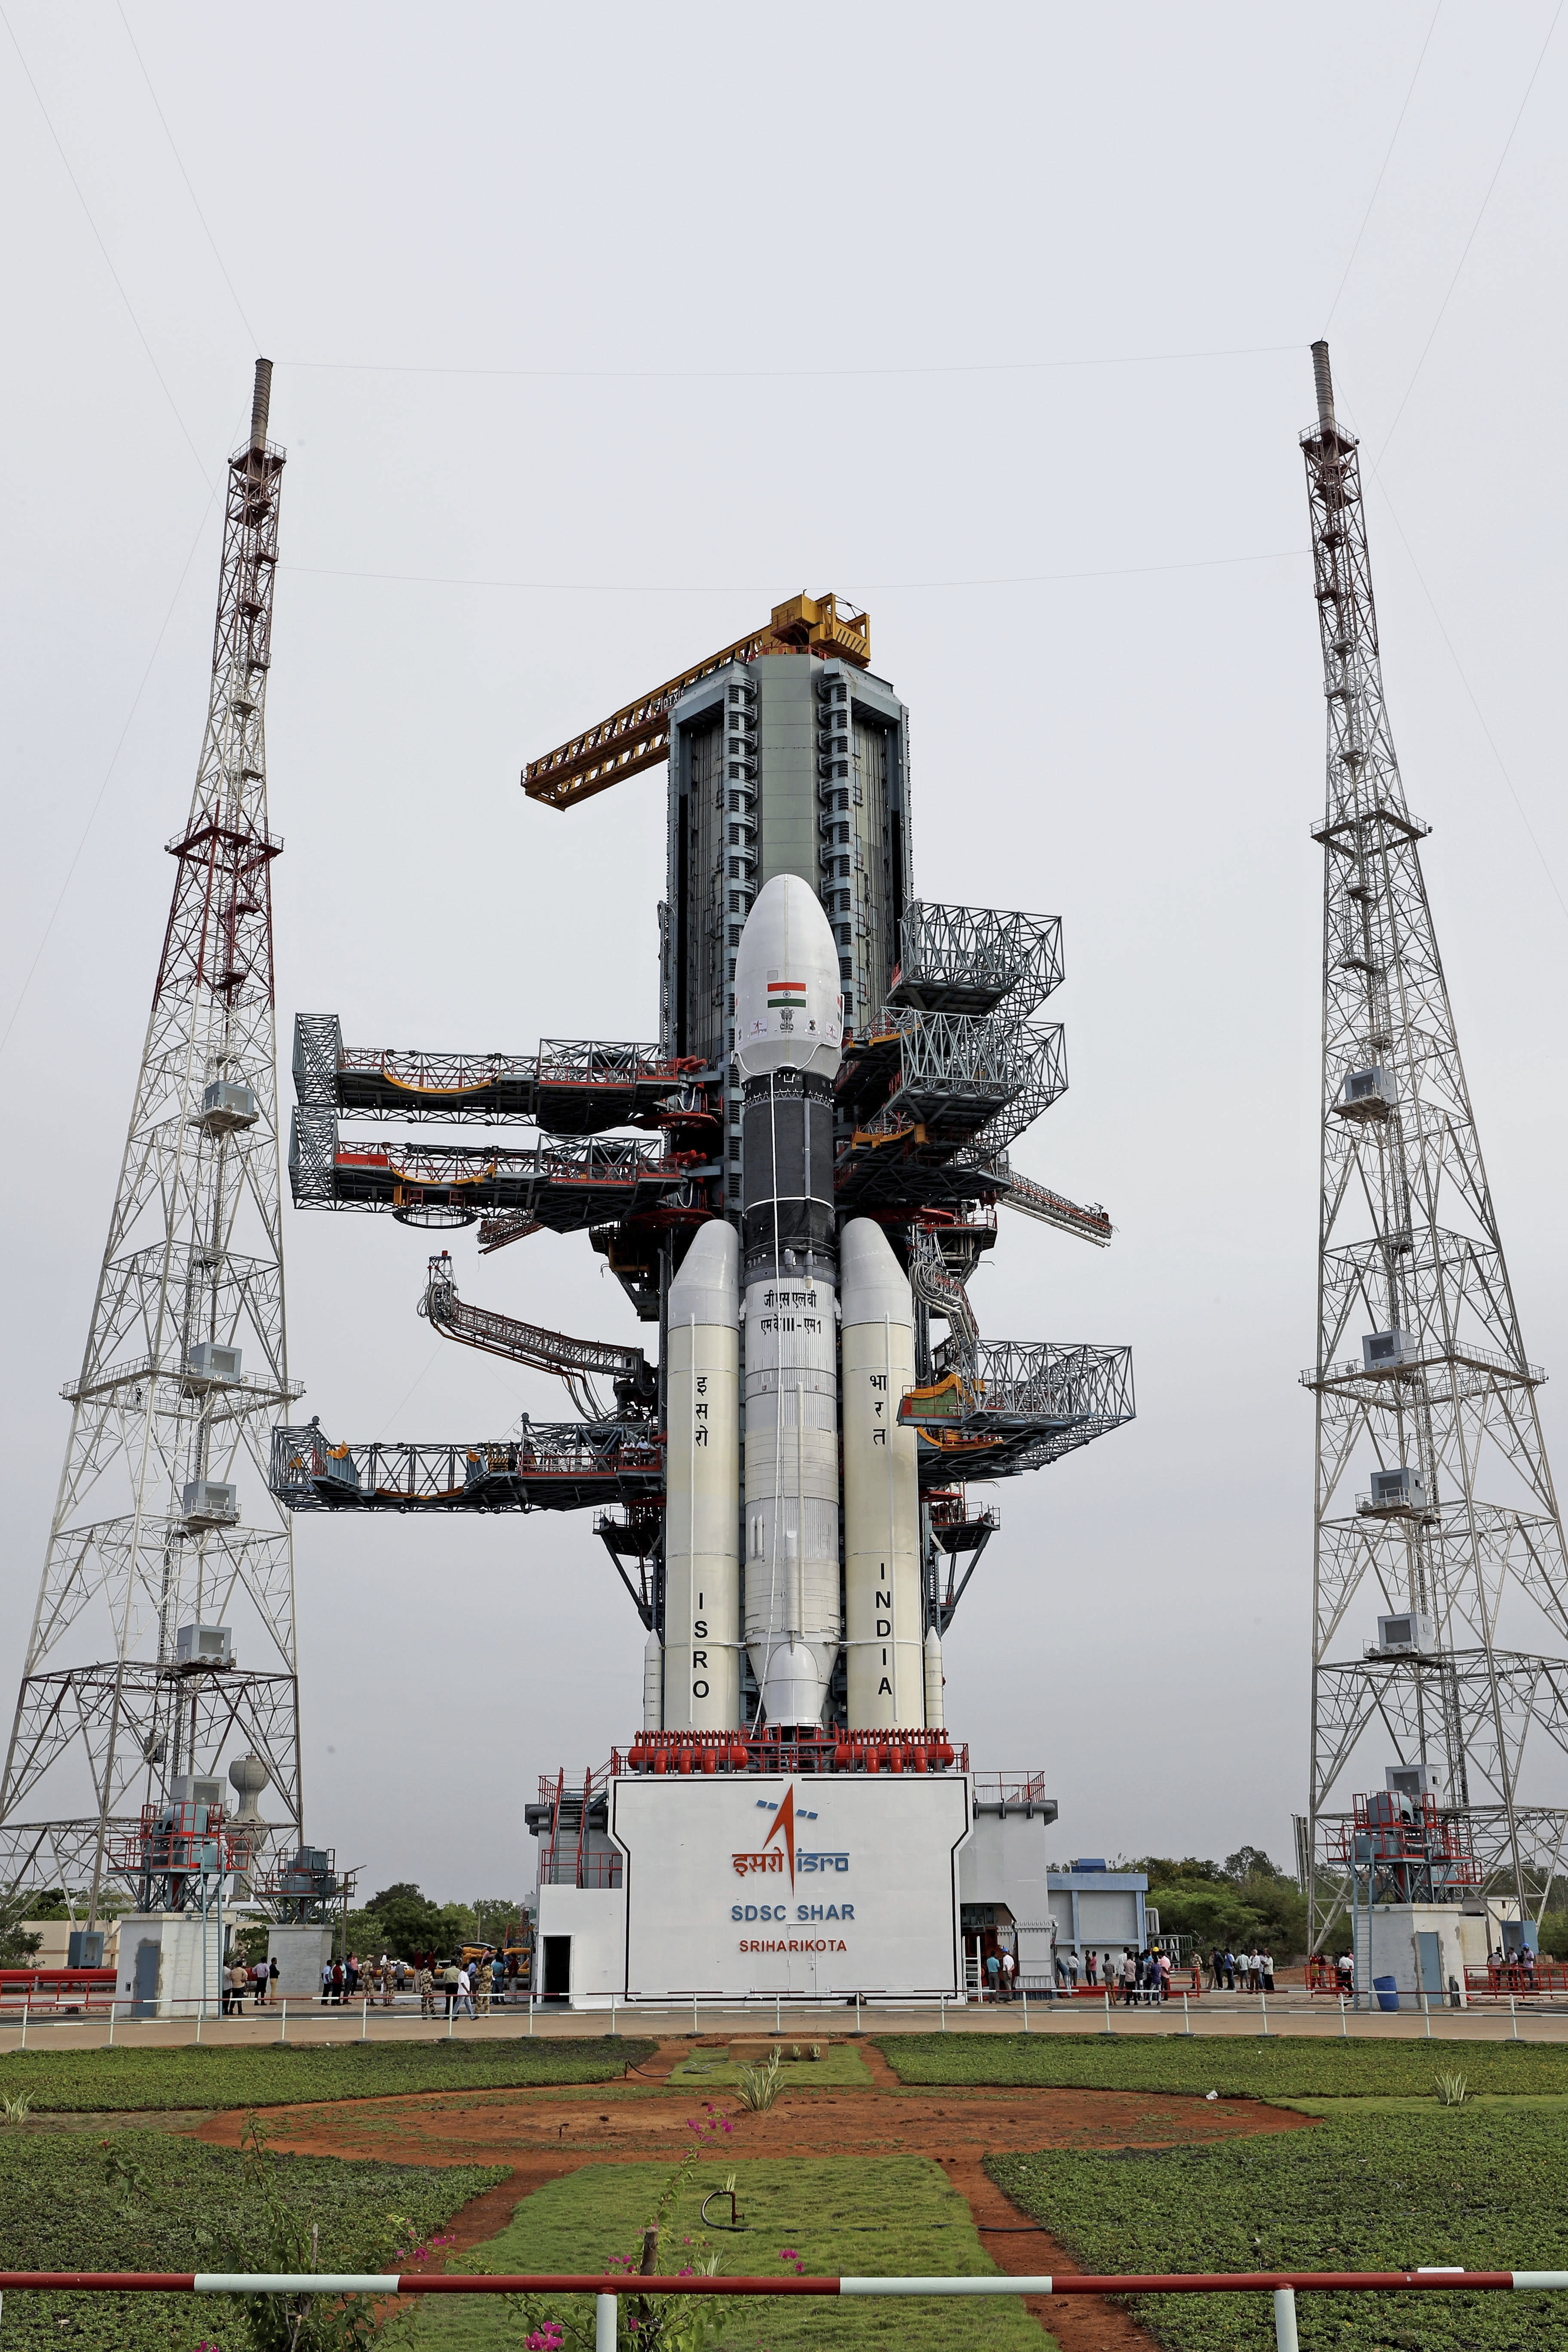 This July 2019, photo released by the Indian Space Research Organization (ISRO) shows its Geosynchronous Satellite Launch Vehicle (GSLV) MkIII-M1 being prepared for its July 15 launch in Sriharikota, an island off India's south-eastern coast. India is looking to take a giant leap in its space program and solidify its place among the world's spacefaring nations with its second unmanned mission to the moon, this one aimed at landing a rover near the unexplored south pole. (Indian Space Research Organization via AP)